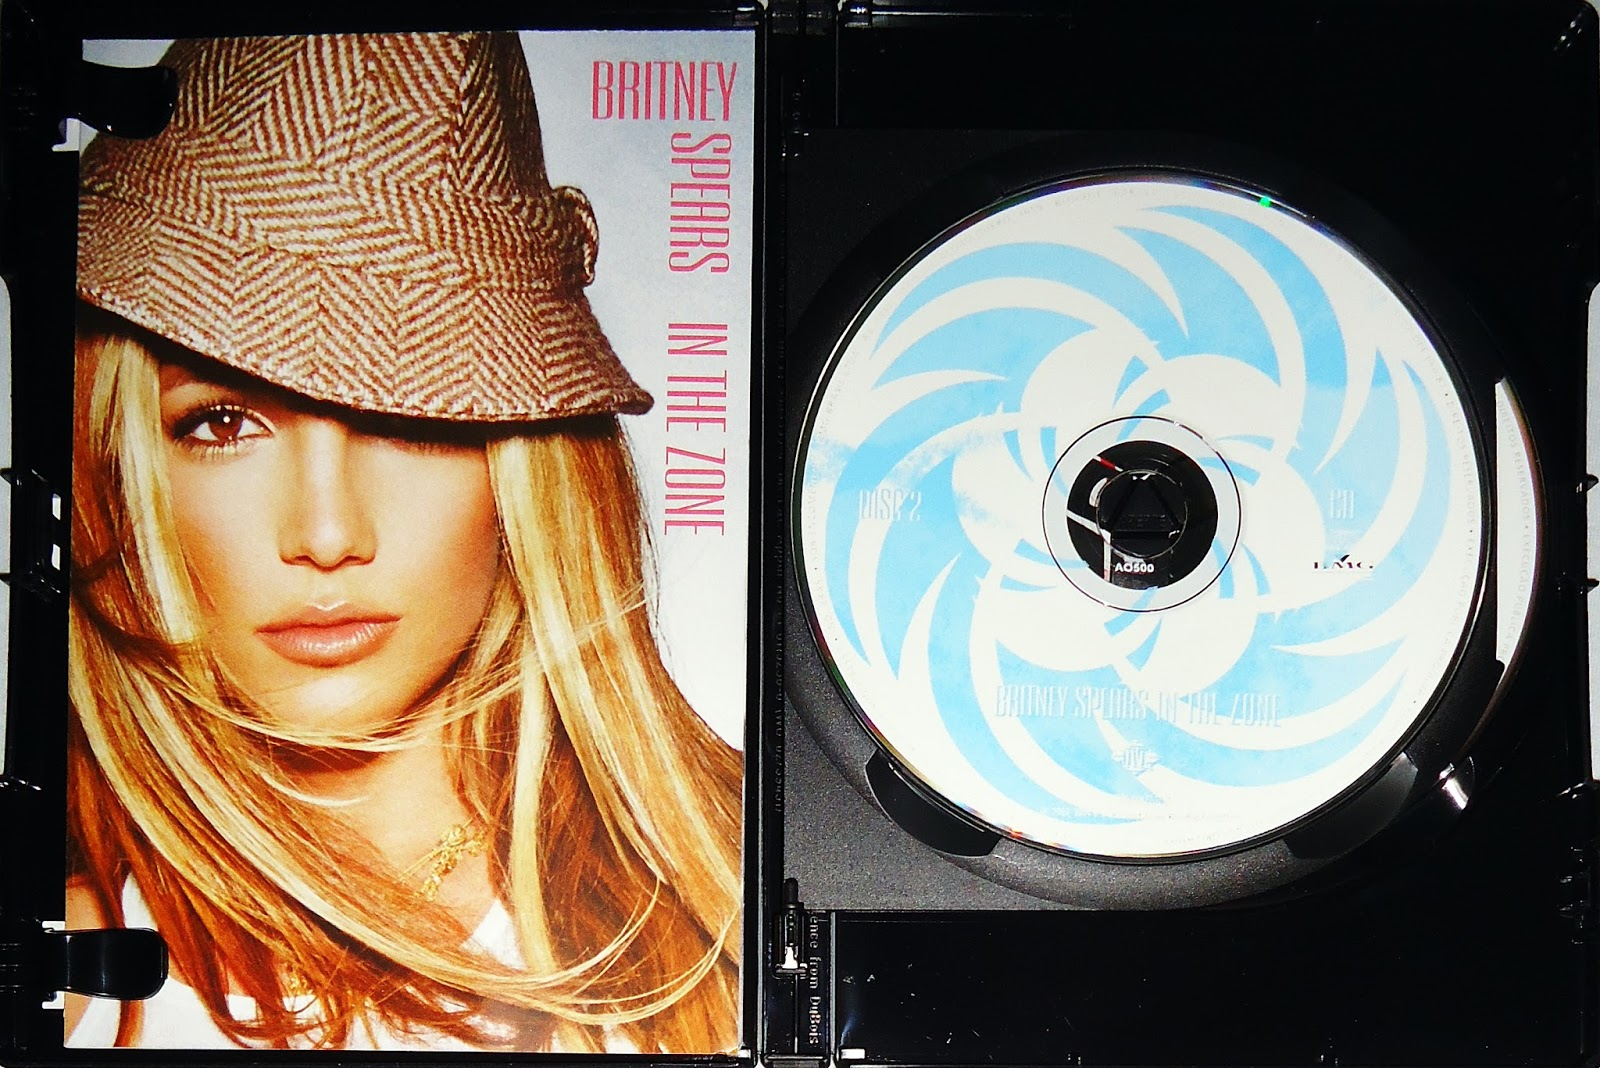 My Collection: Britney...